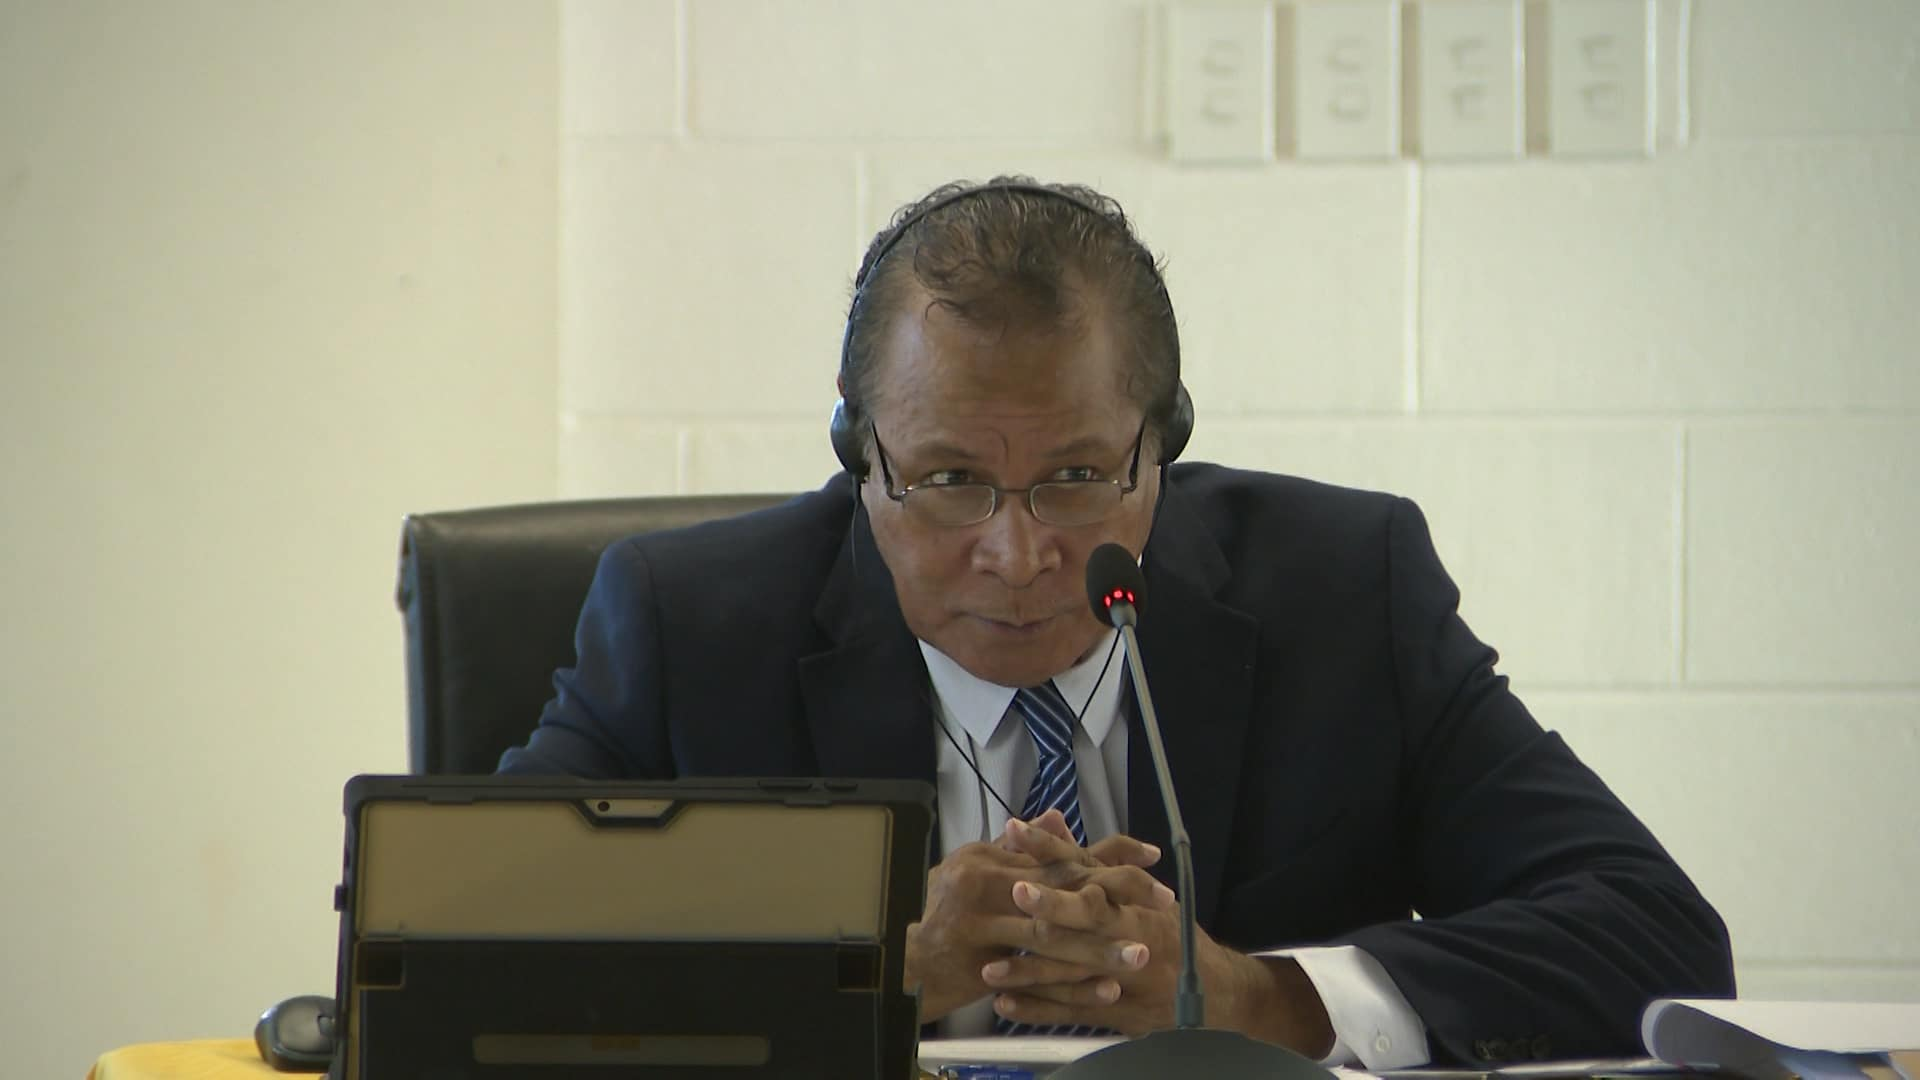 The Minister for Finance Crossley Tatui has told the Fono Ekepule not to take advantage of COVID-19 assistance.  Tatui was speaking during the recent deliberations on the national budget in Parliament…